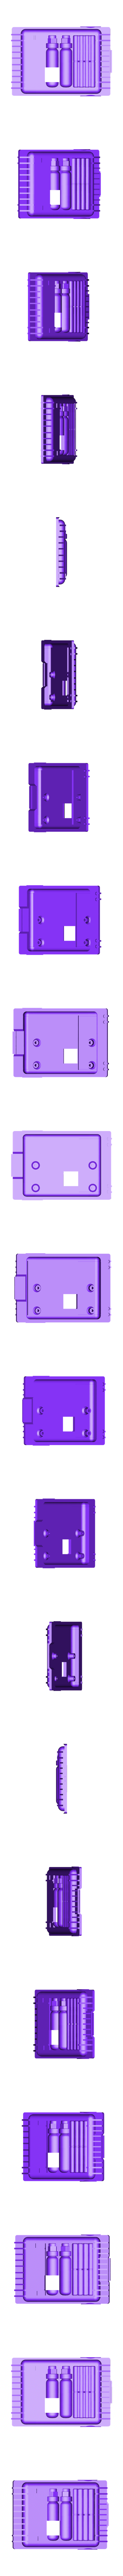 Top_twitch.stl Download free STL file Twitch Drone Chassis for ZeroBot • 3D printable template, MaxMKA